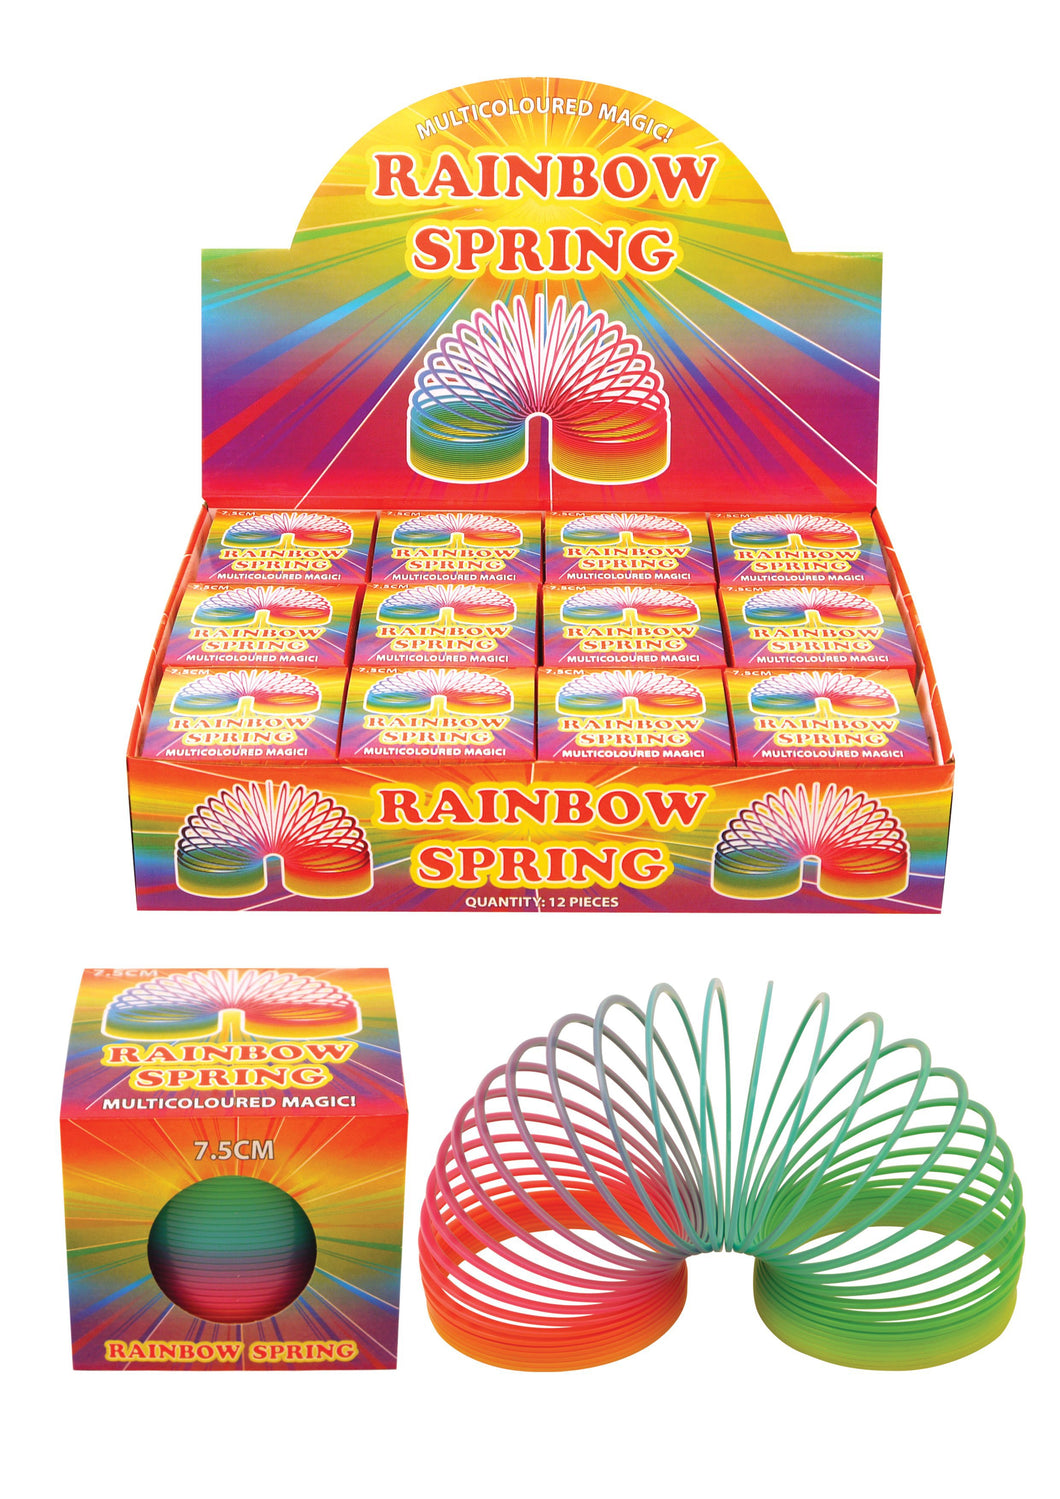 Childrens Playing Rainbow Springing Bouncy Spring 7.5cm  N19051 (Parcel Rate)